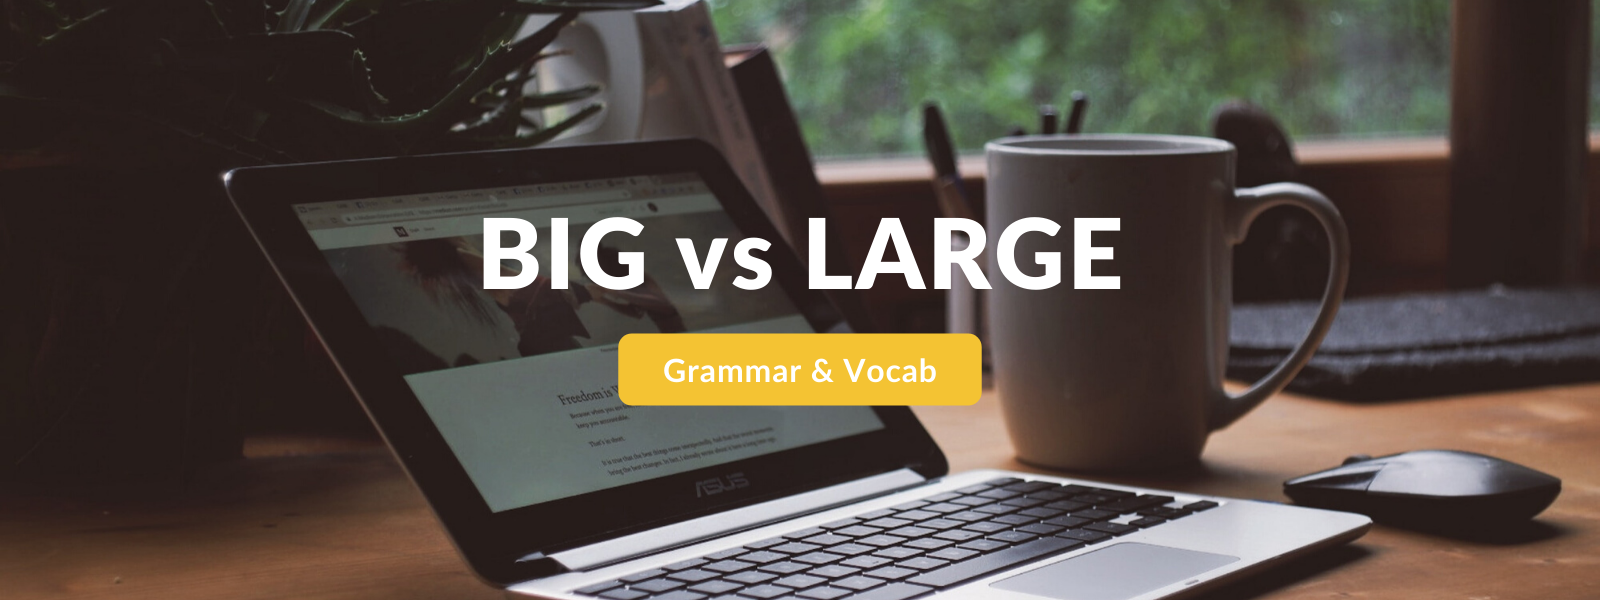 BIG vs LARGE - English grammar tips